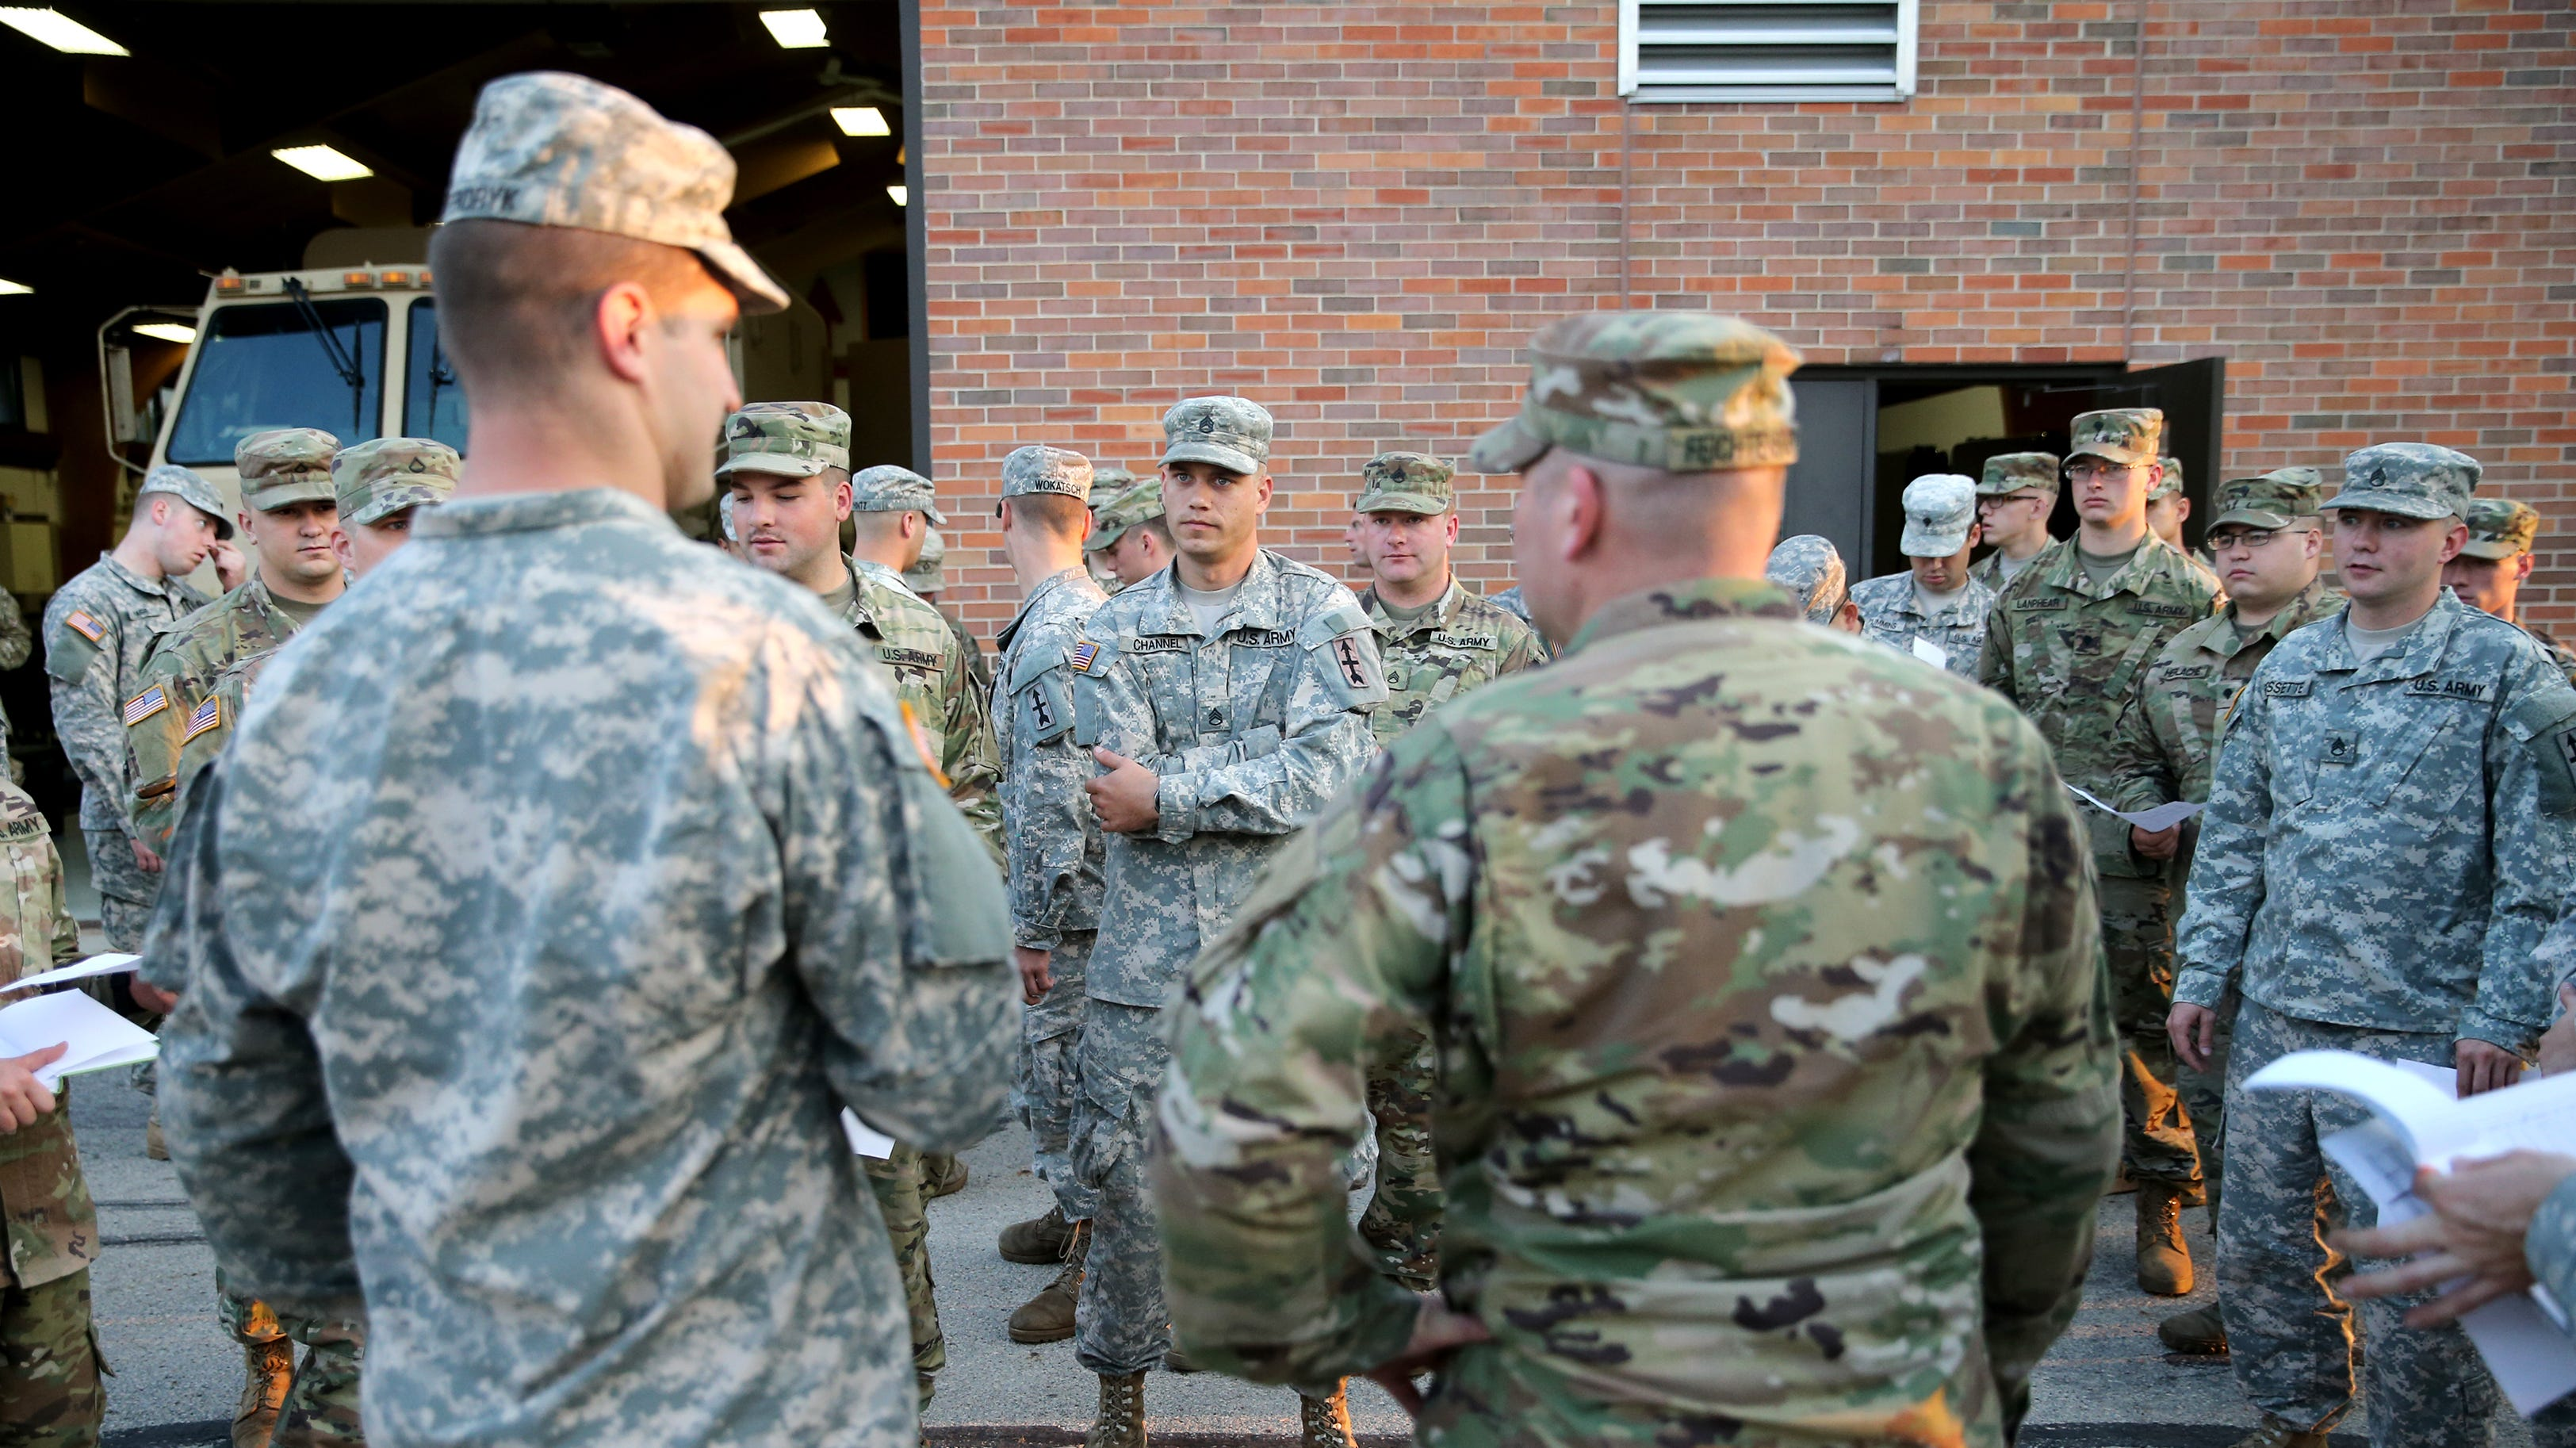 Members of the Headquarters and Headquarters Company, 2nd battalion, 127th Infantry, of the Wisconsin National Guard gather for a convoy briefing before deployment to Florida to support Hurricane Irma relief efforts Tuesday, Sept. 12, 2017, in Appleton, Wis.